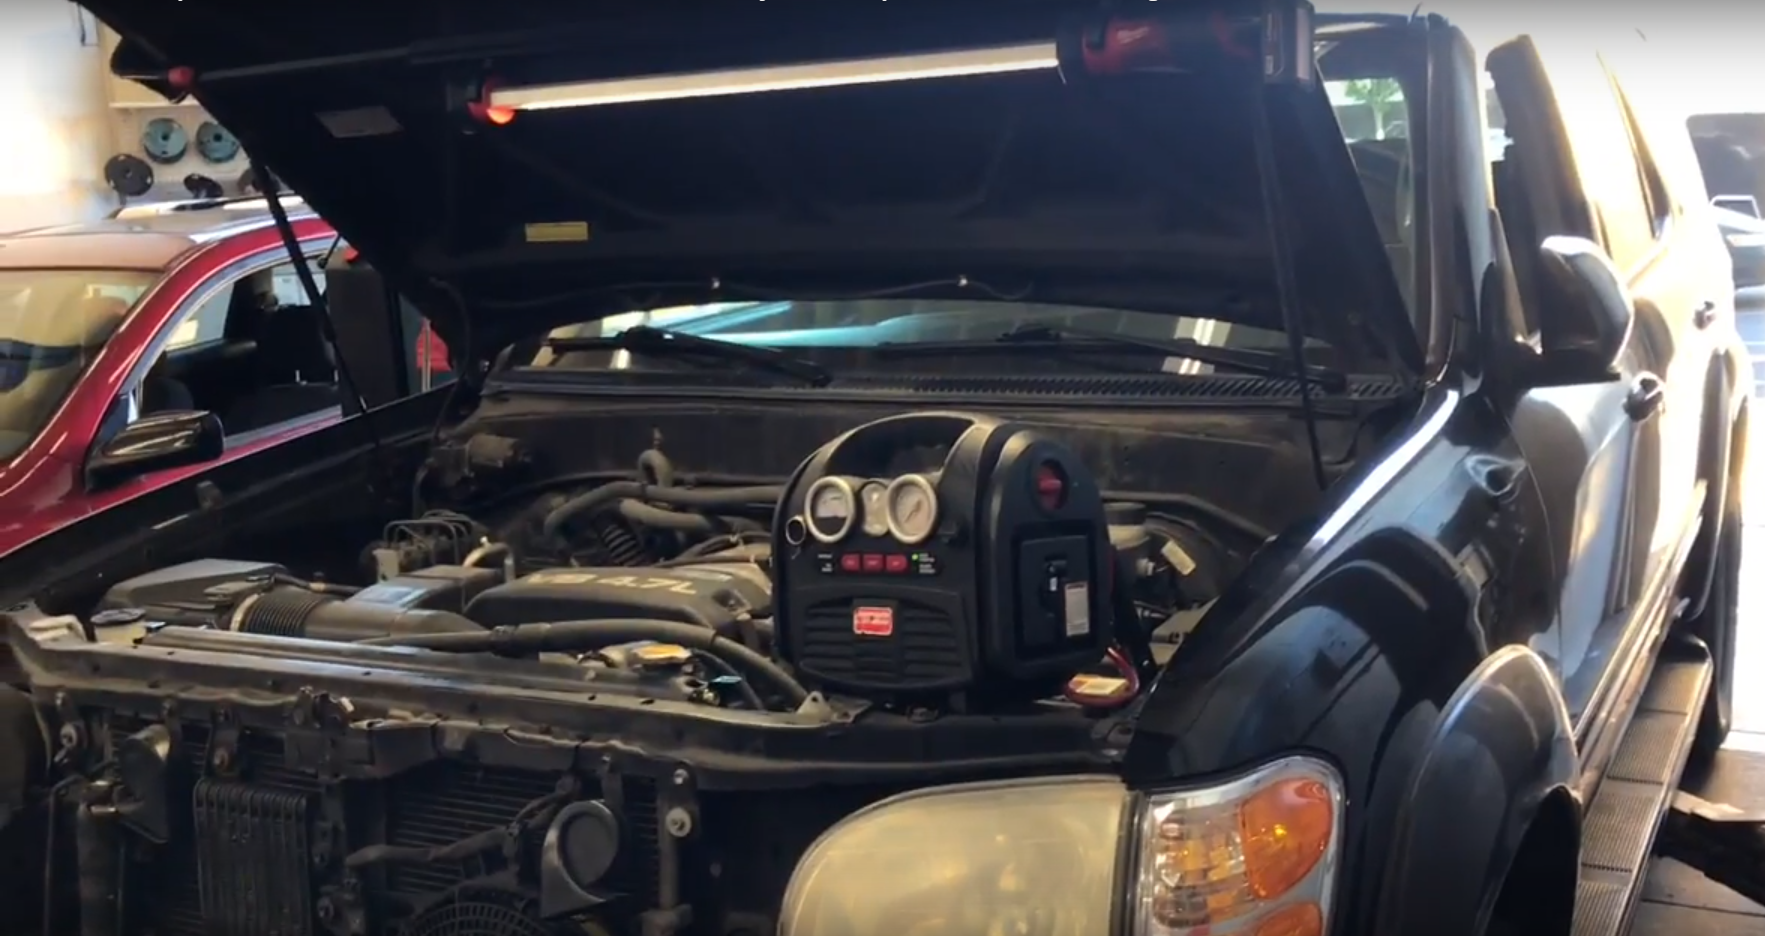 How to Replace the Alternator on a 2000-2007 Toyota Sequoia with 4 7